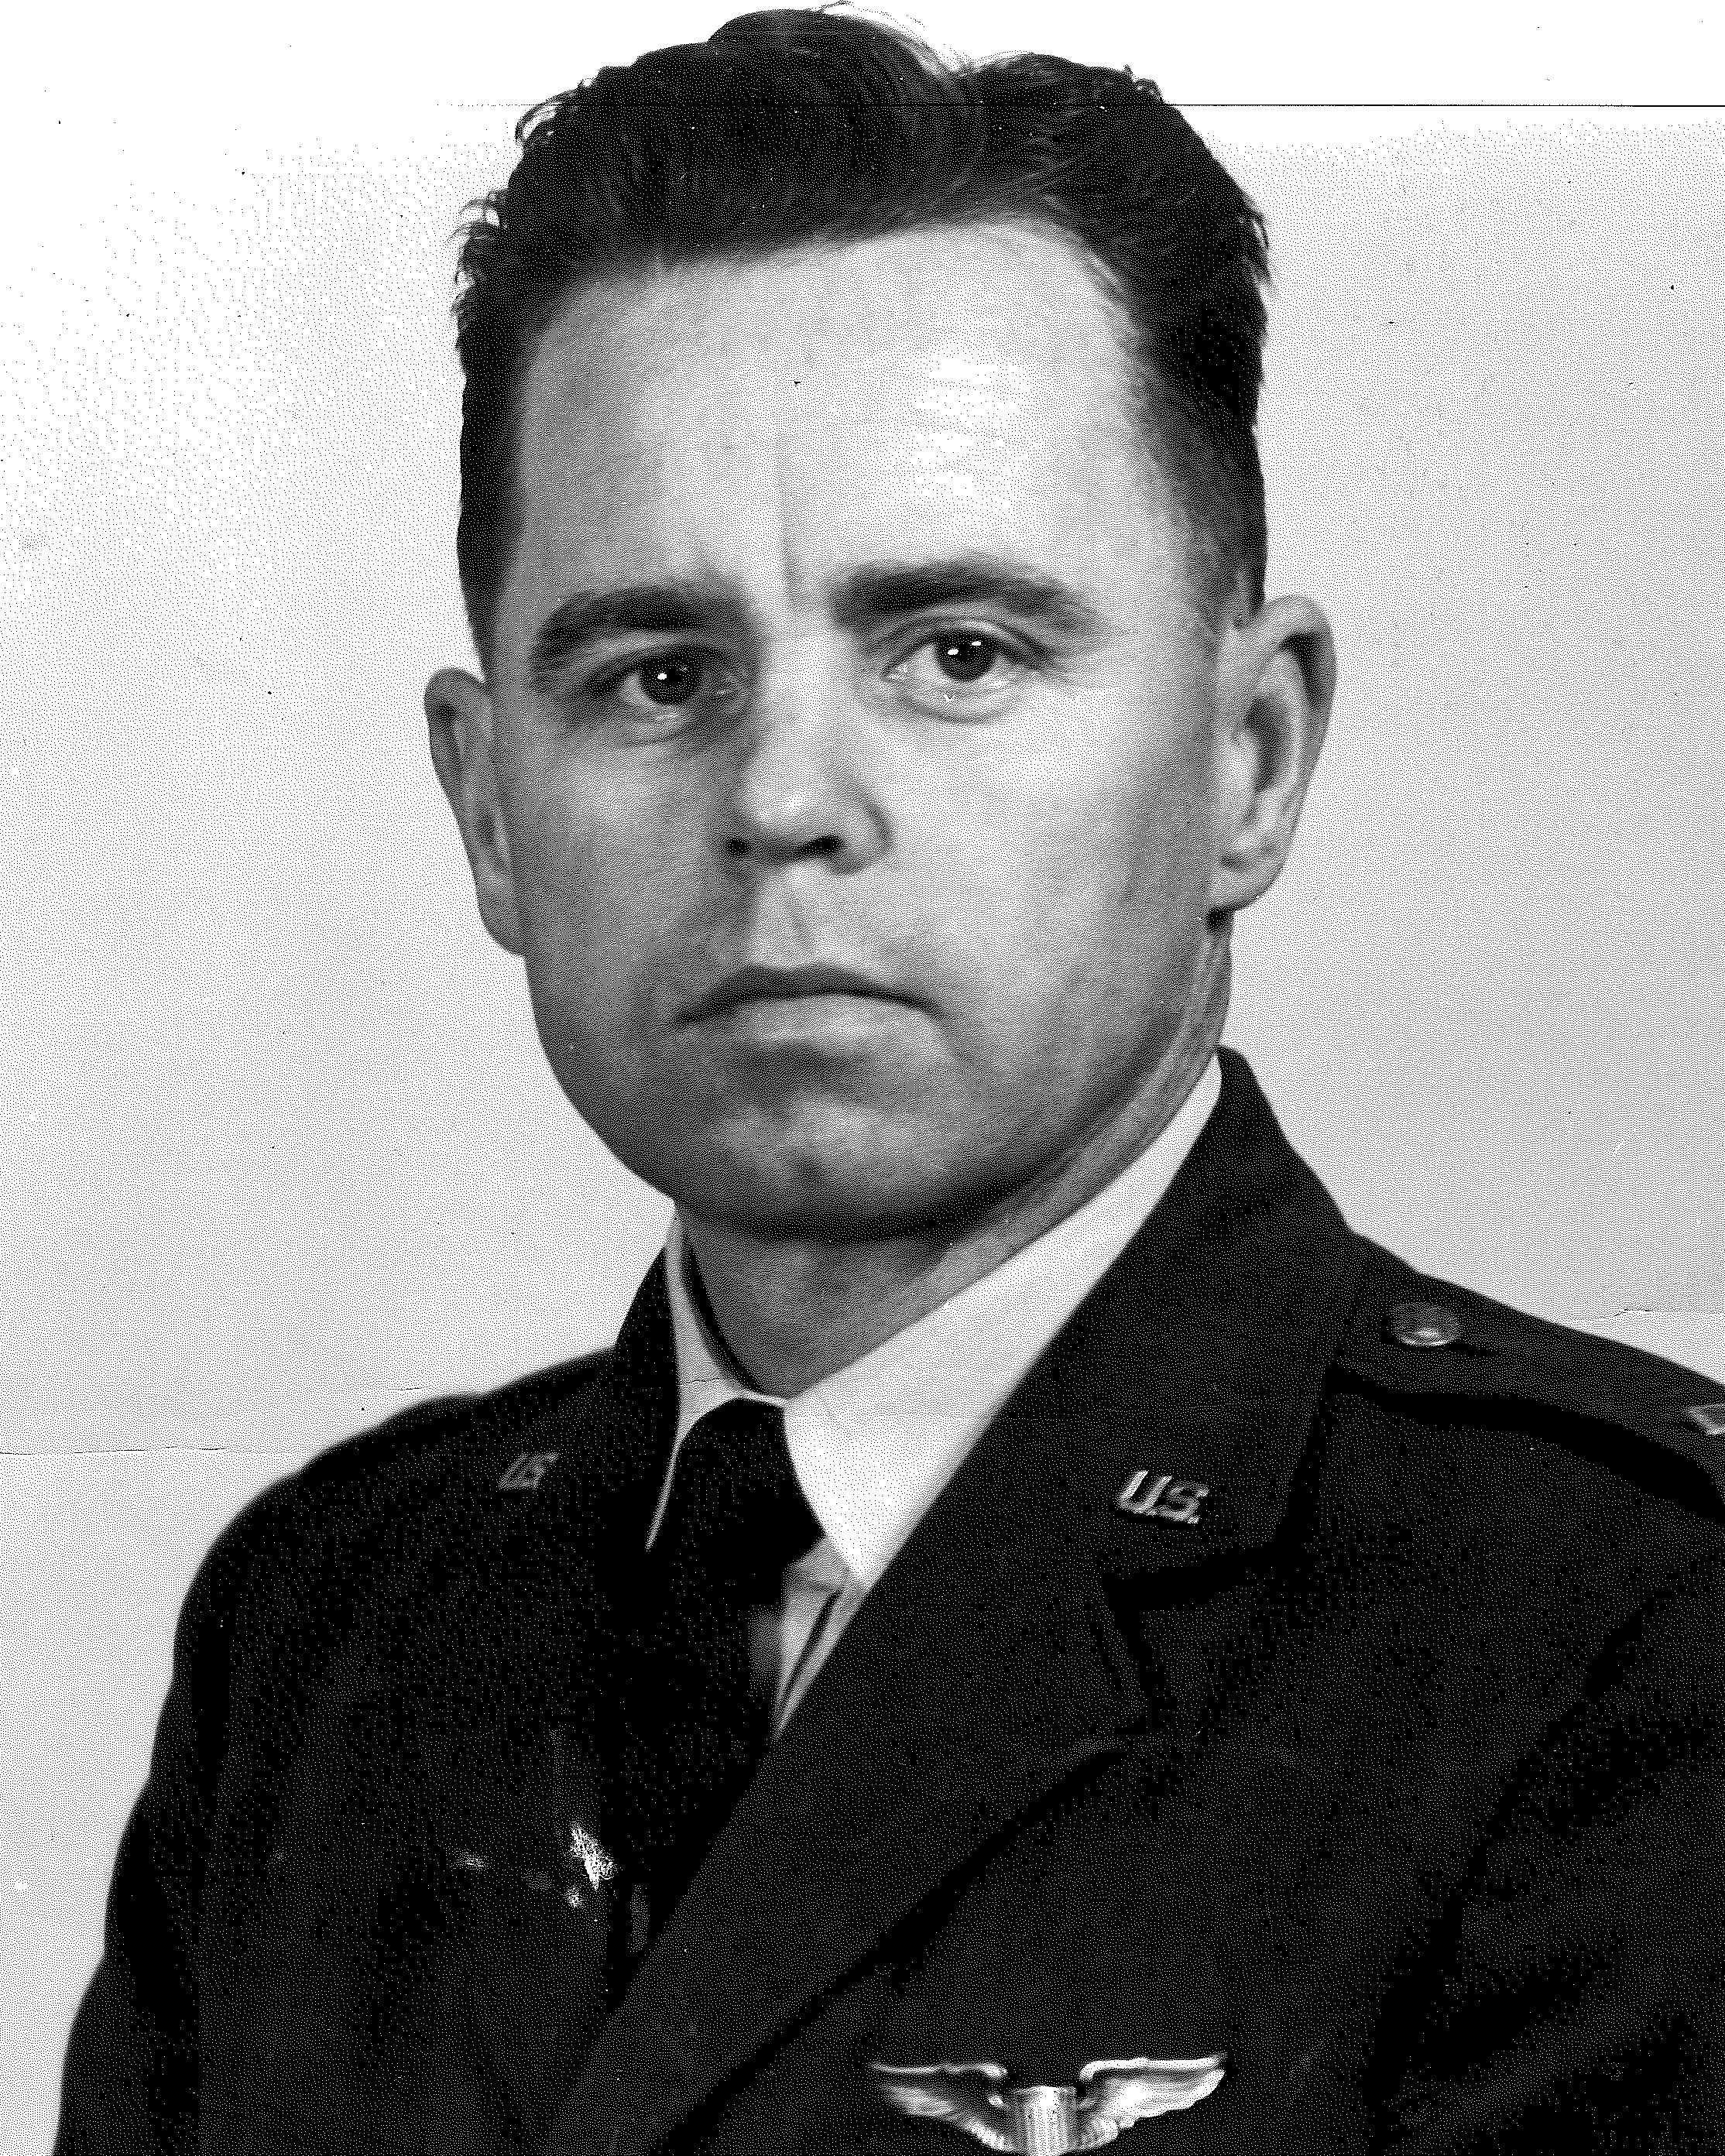 Lt. Colonel Paul Summey